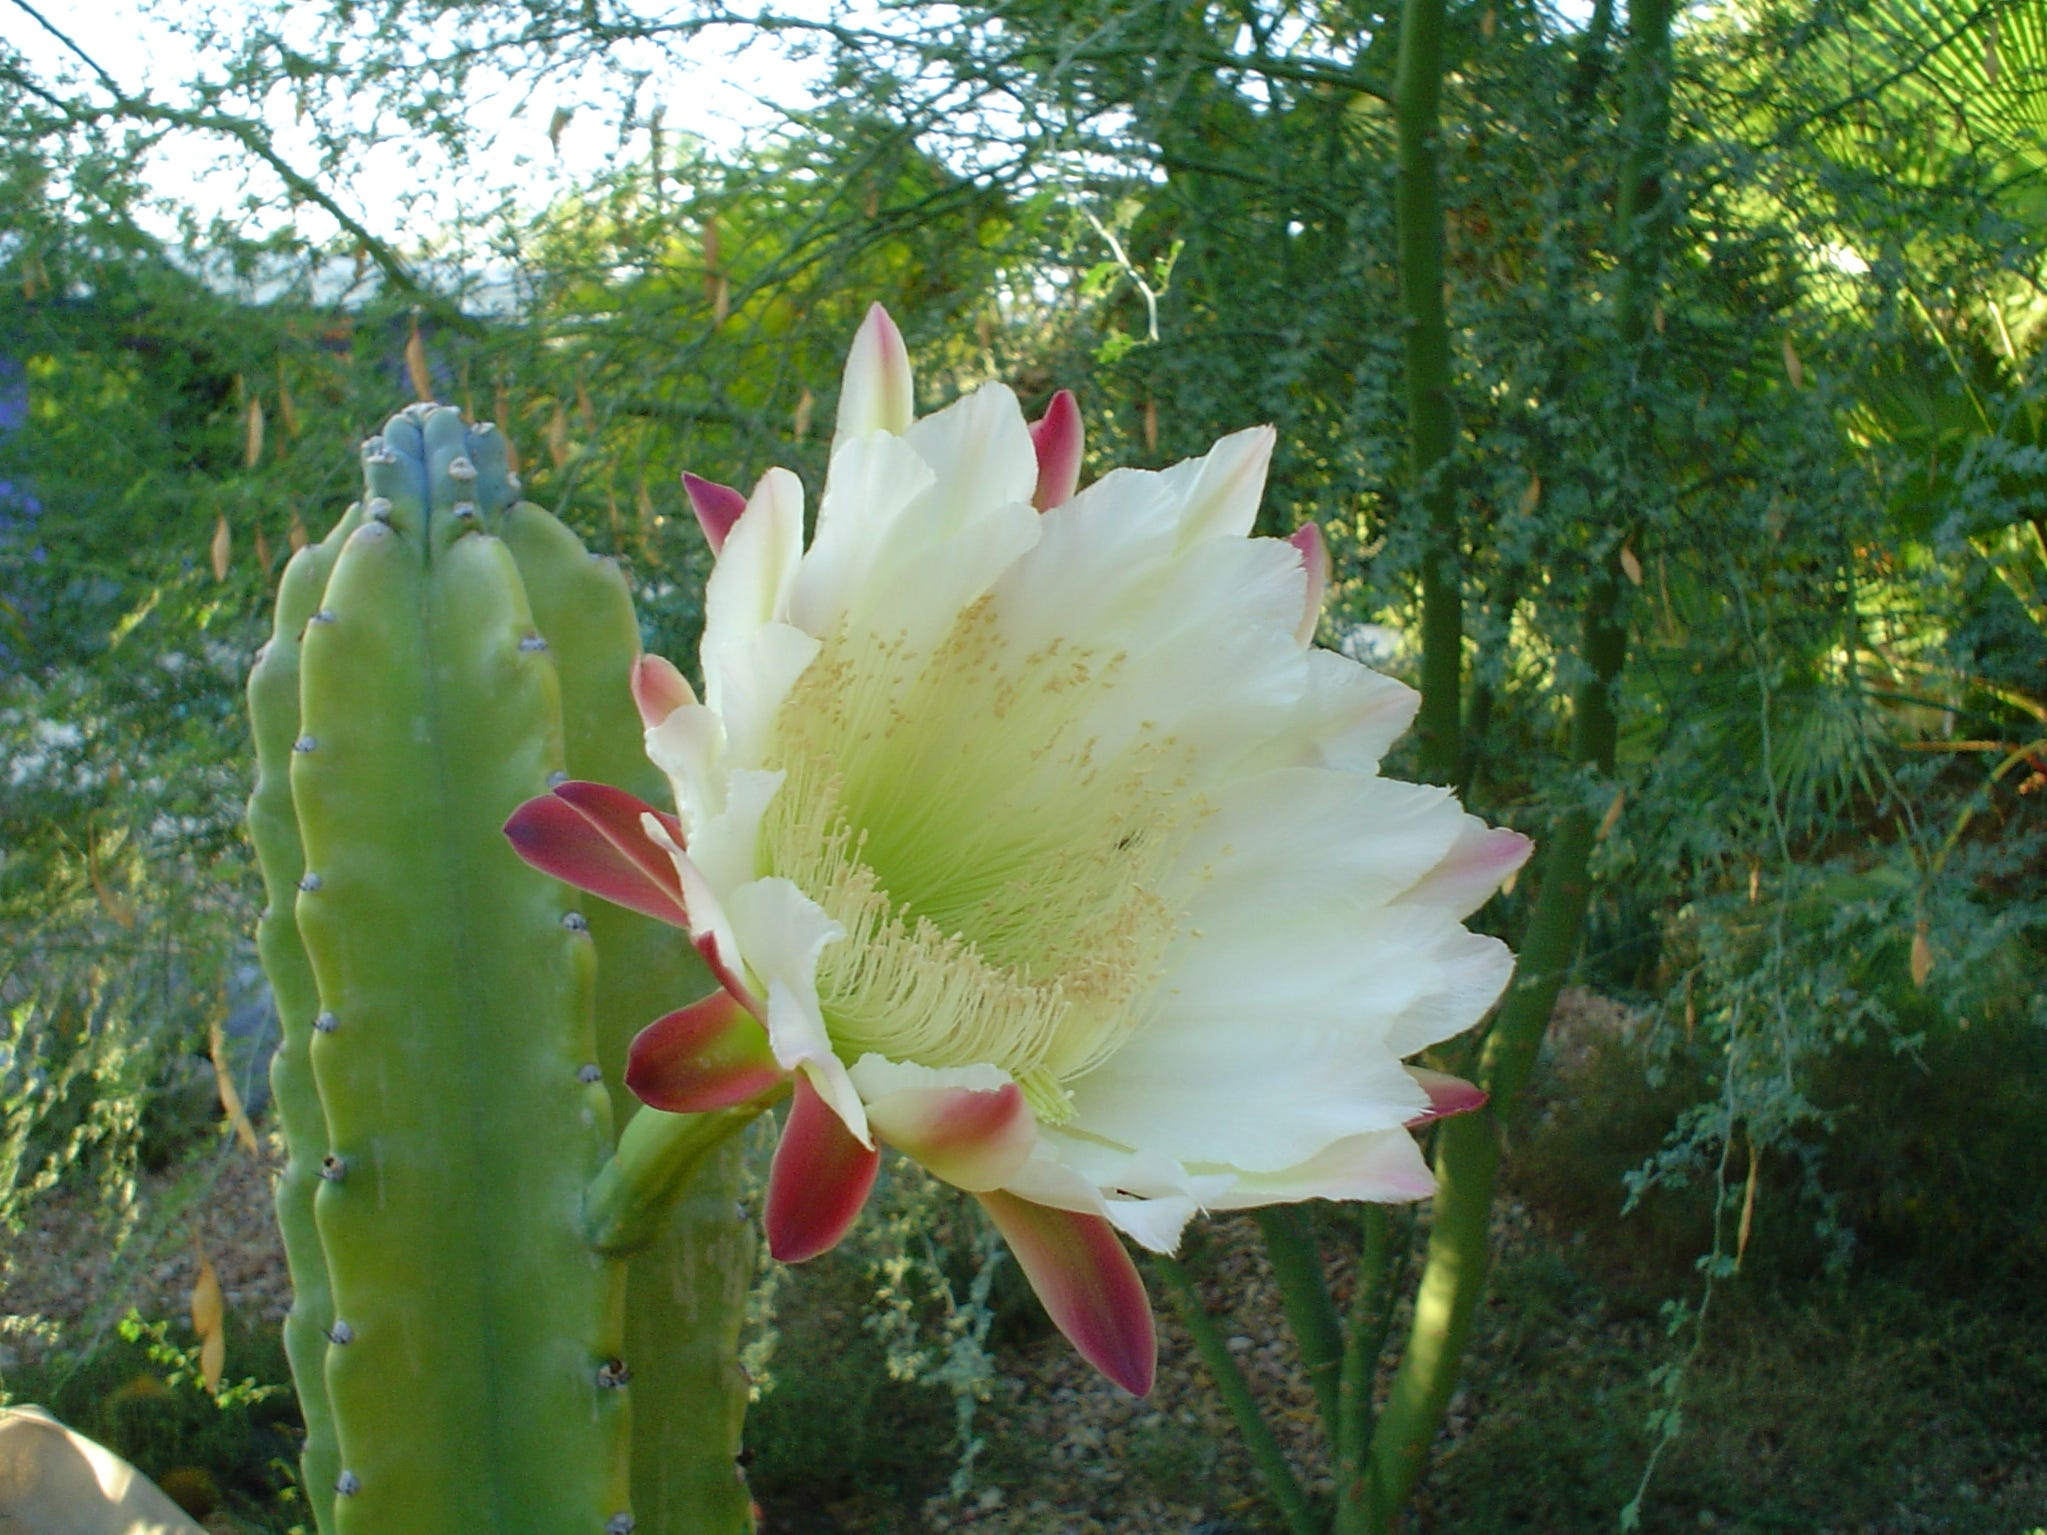 Apple cactus blossom in the early morning light.